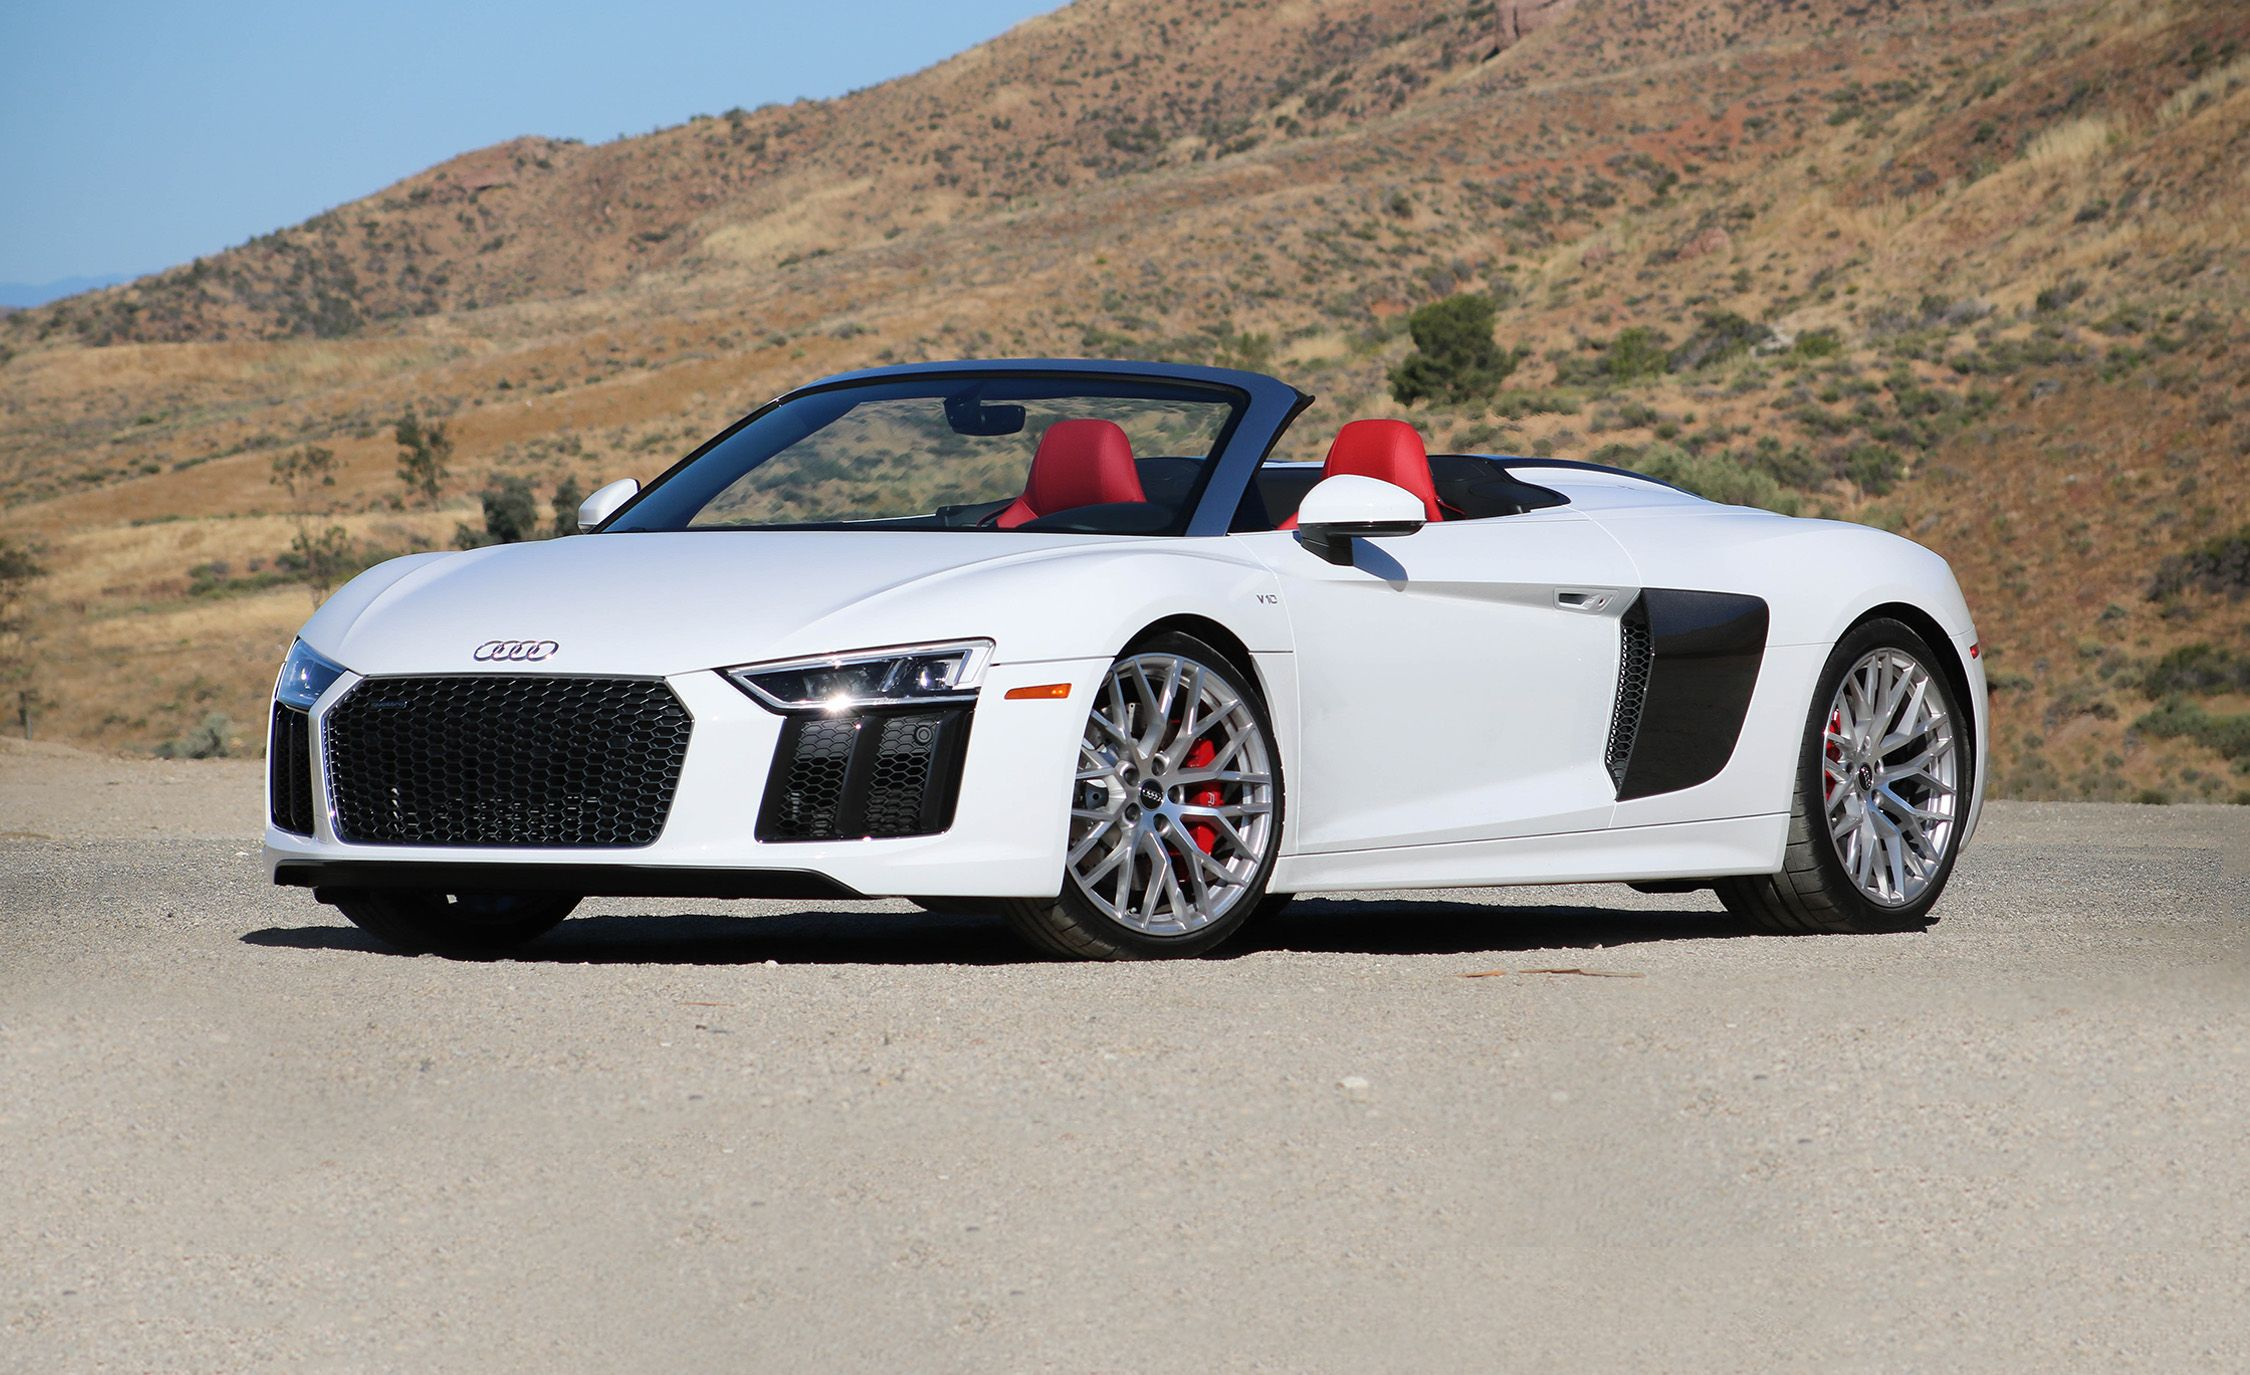 2017 Audi R8 Spyder Instrumented Test Review Car And